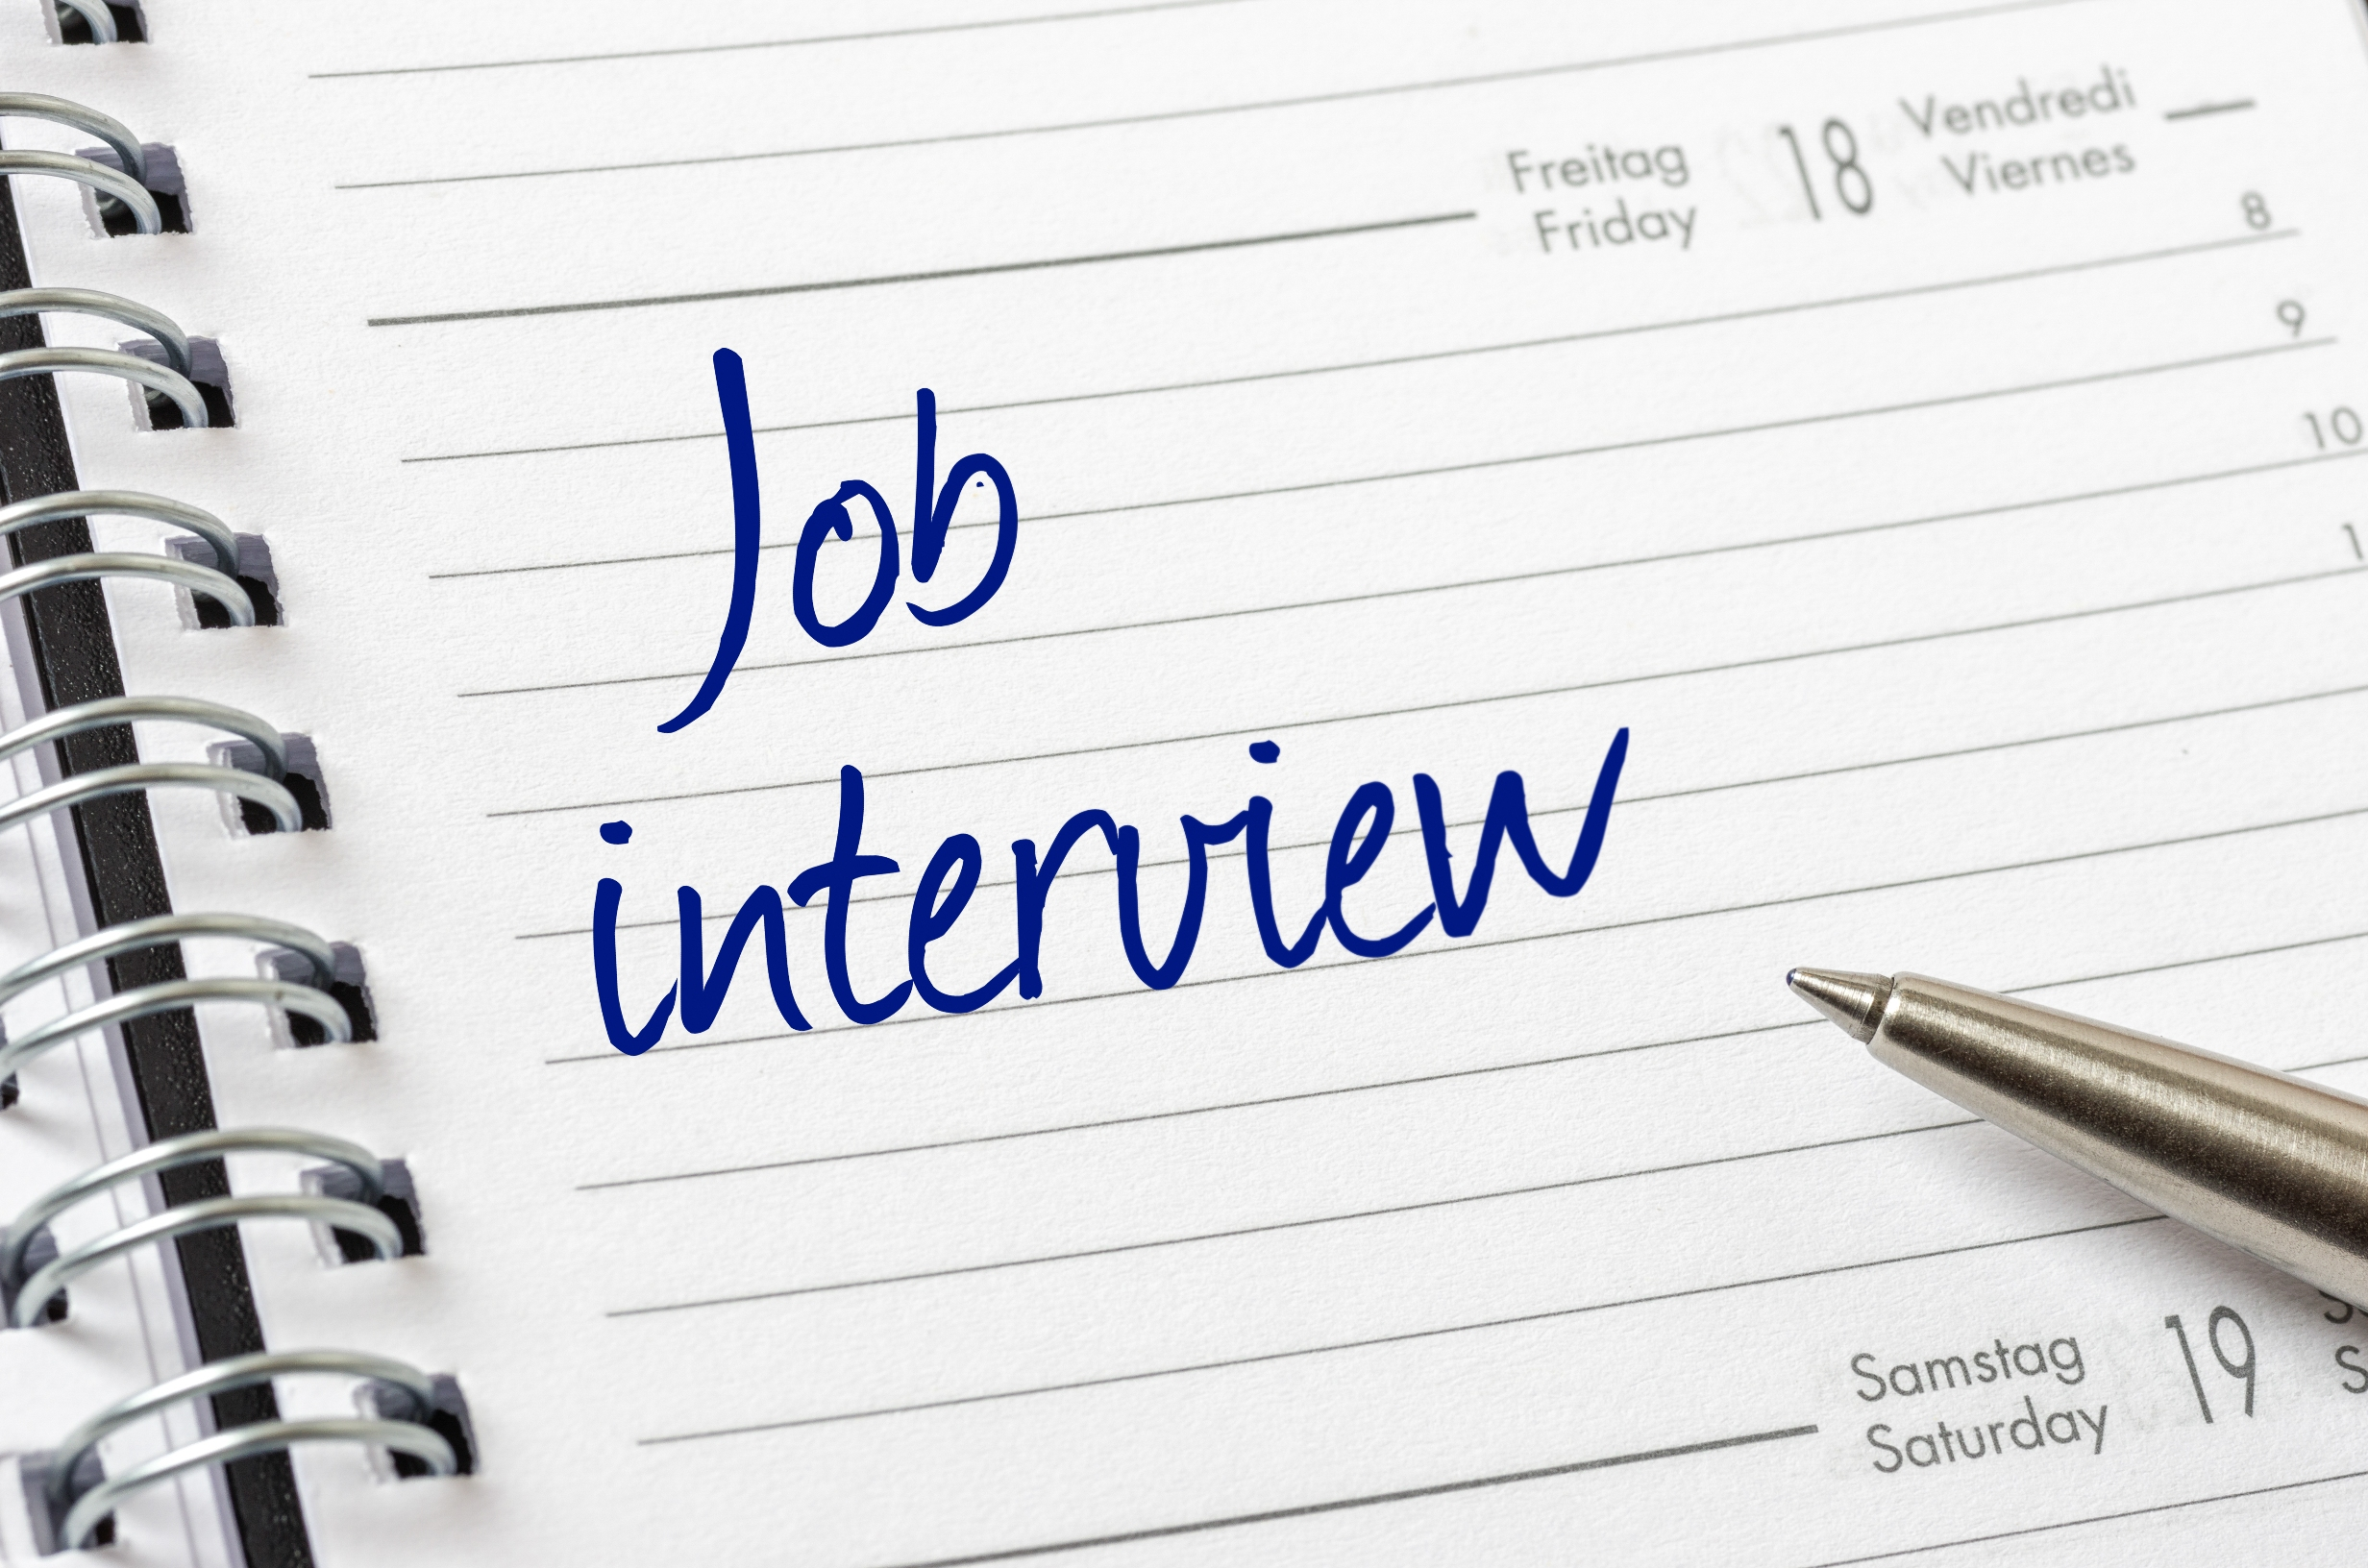 jobs for veterans interviewing job interviews how do you pass muster